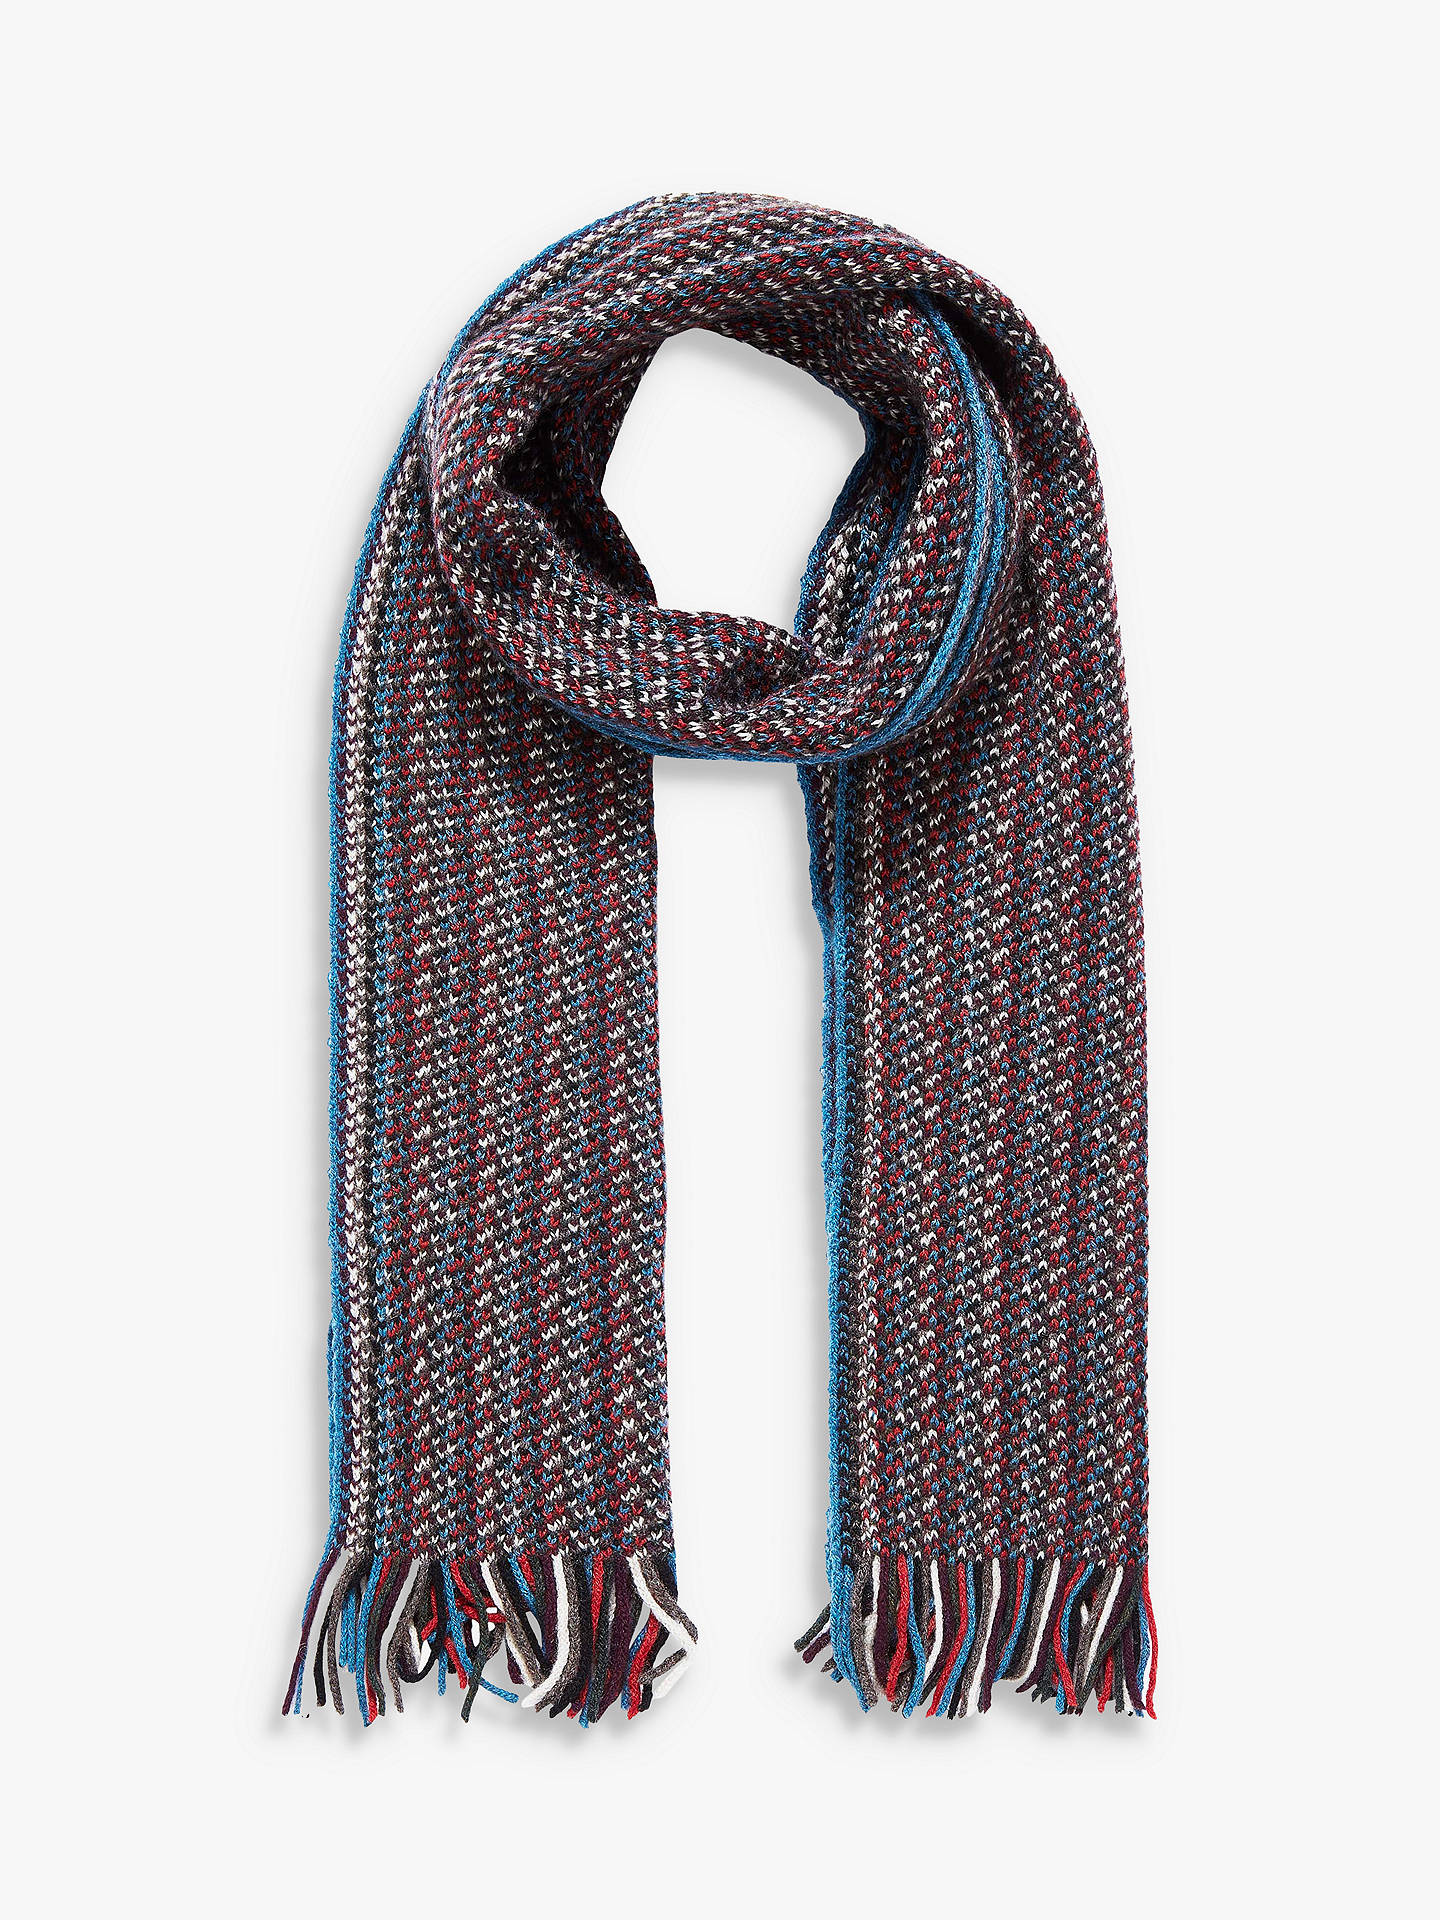 852d263a0 Buy Brora Speckle Knit Cashmere Scarf, Ocean/Clay, One Size Online at  johnlewis ...